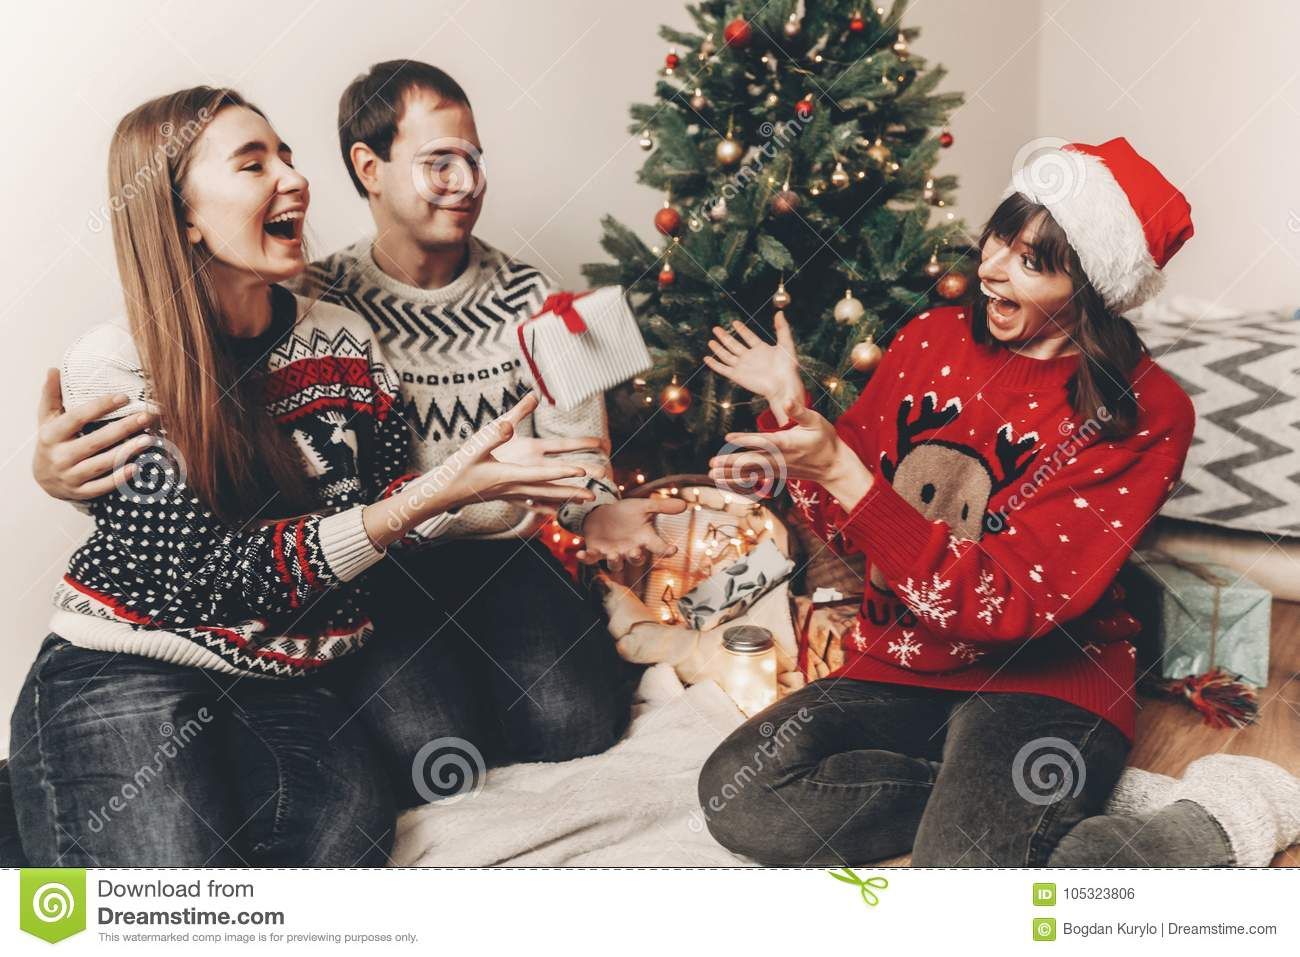 merry christmas and happy new year concept. stylish hipster family in festive sweaters exchanging gifts at christmas tree lights.